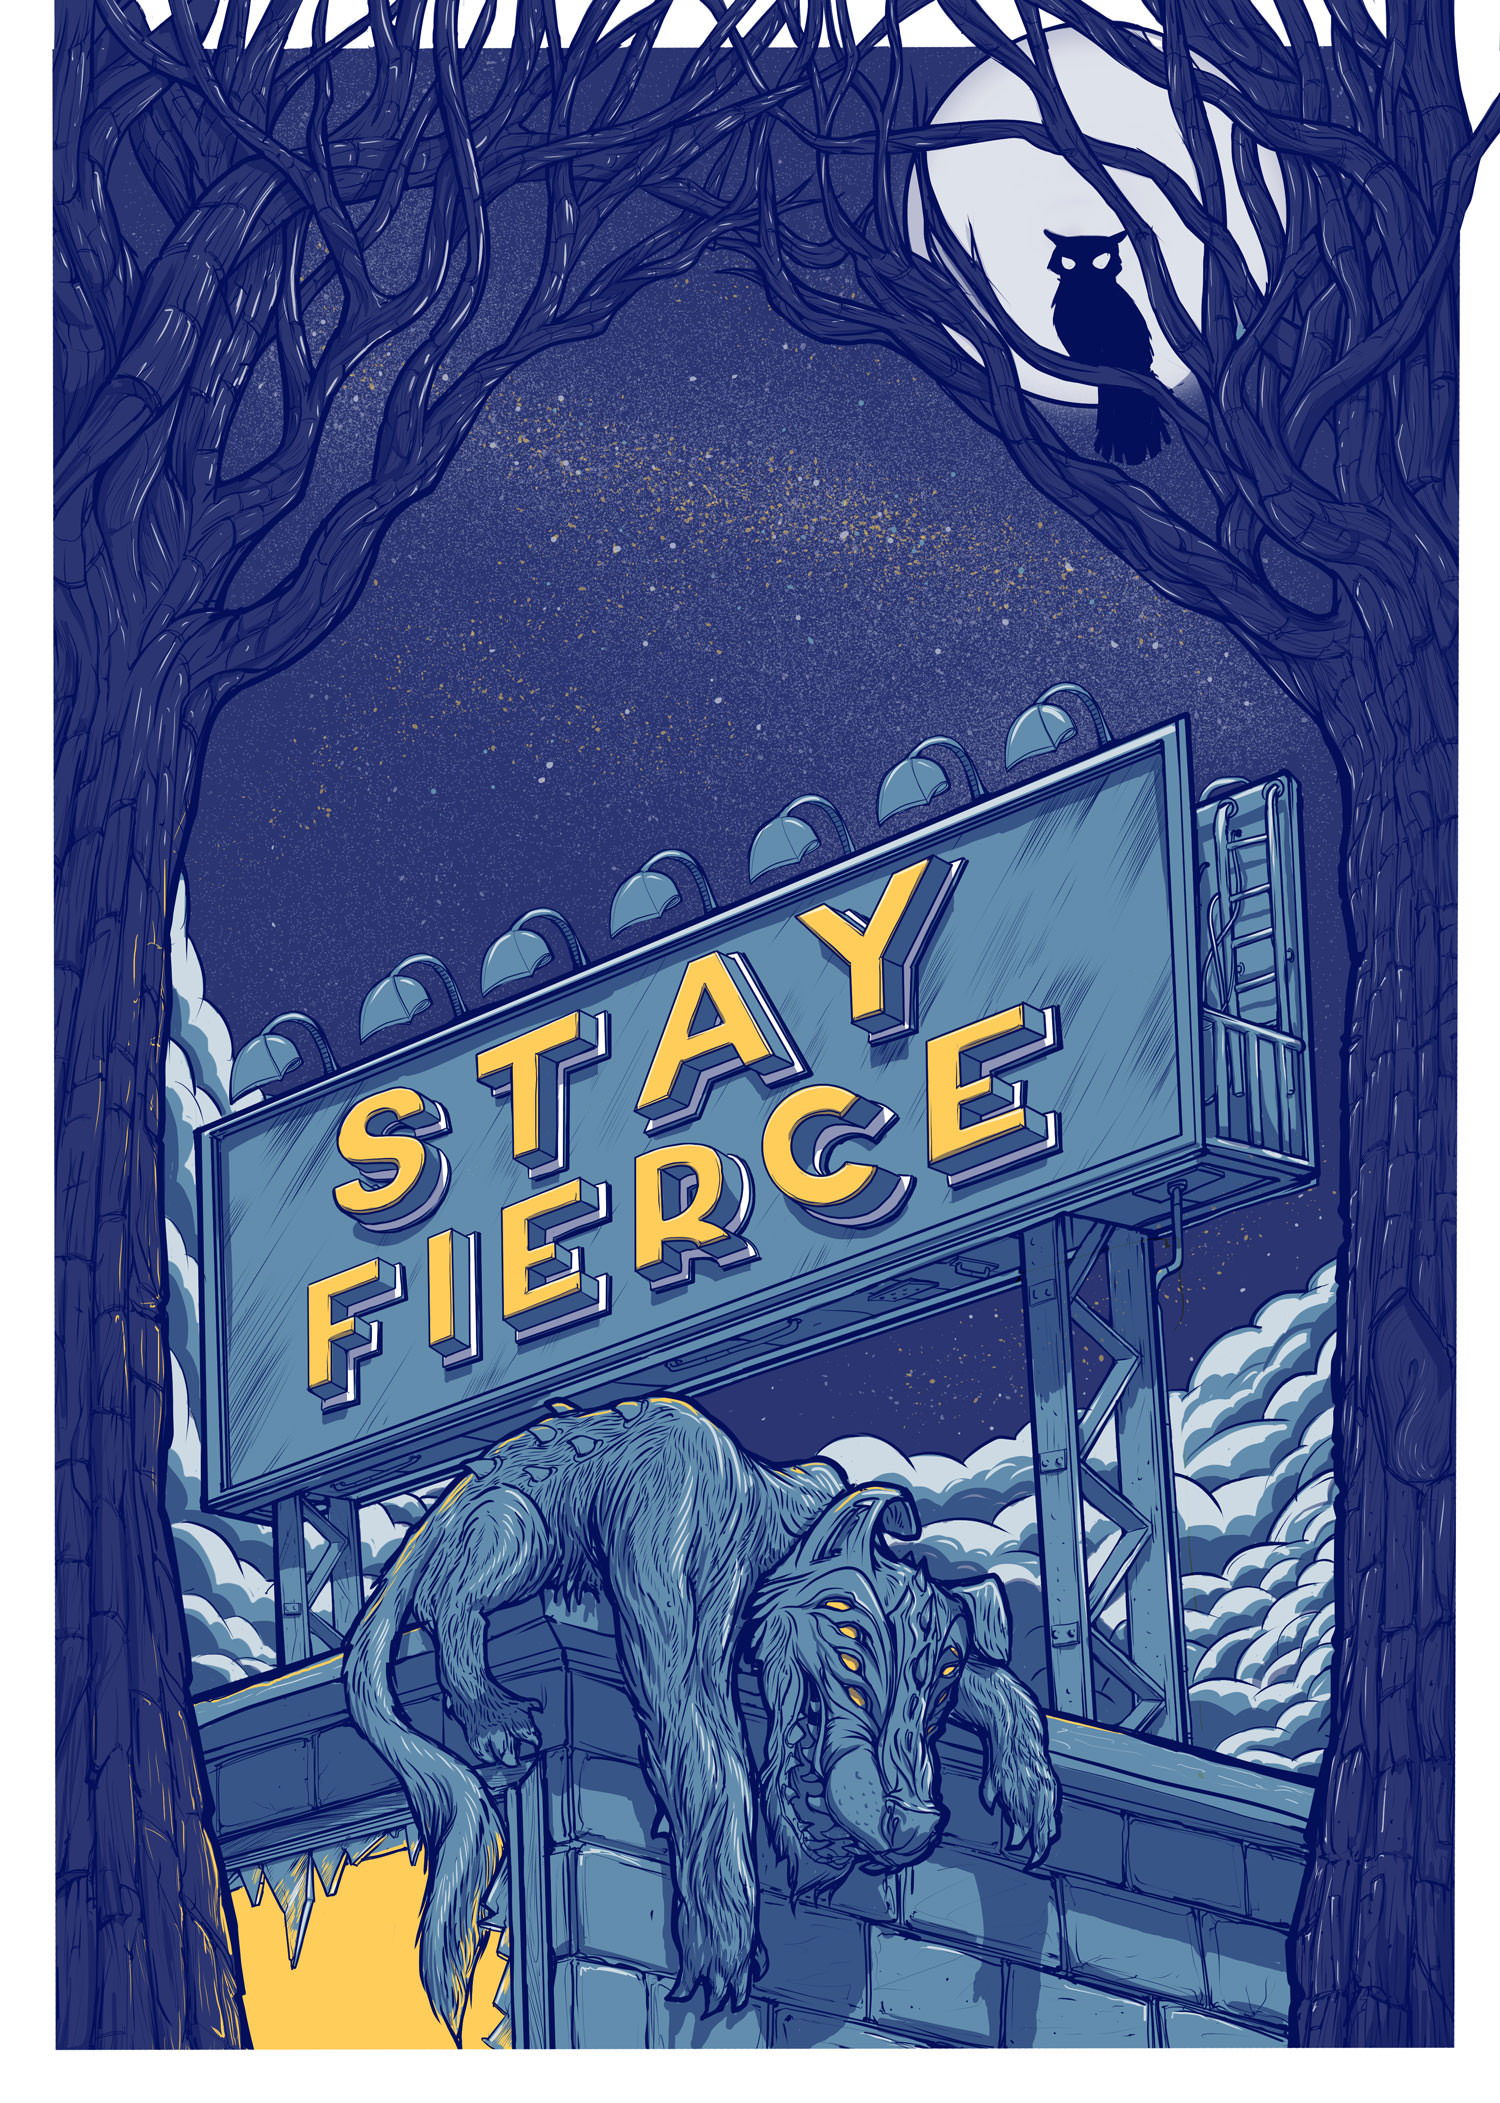 Stay Fierce, motivational illustrated poster design